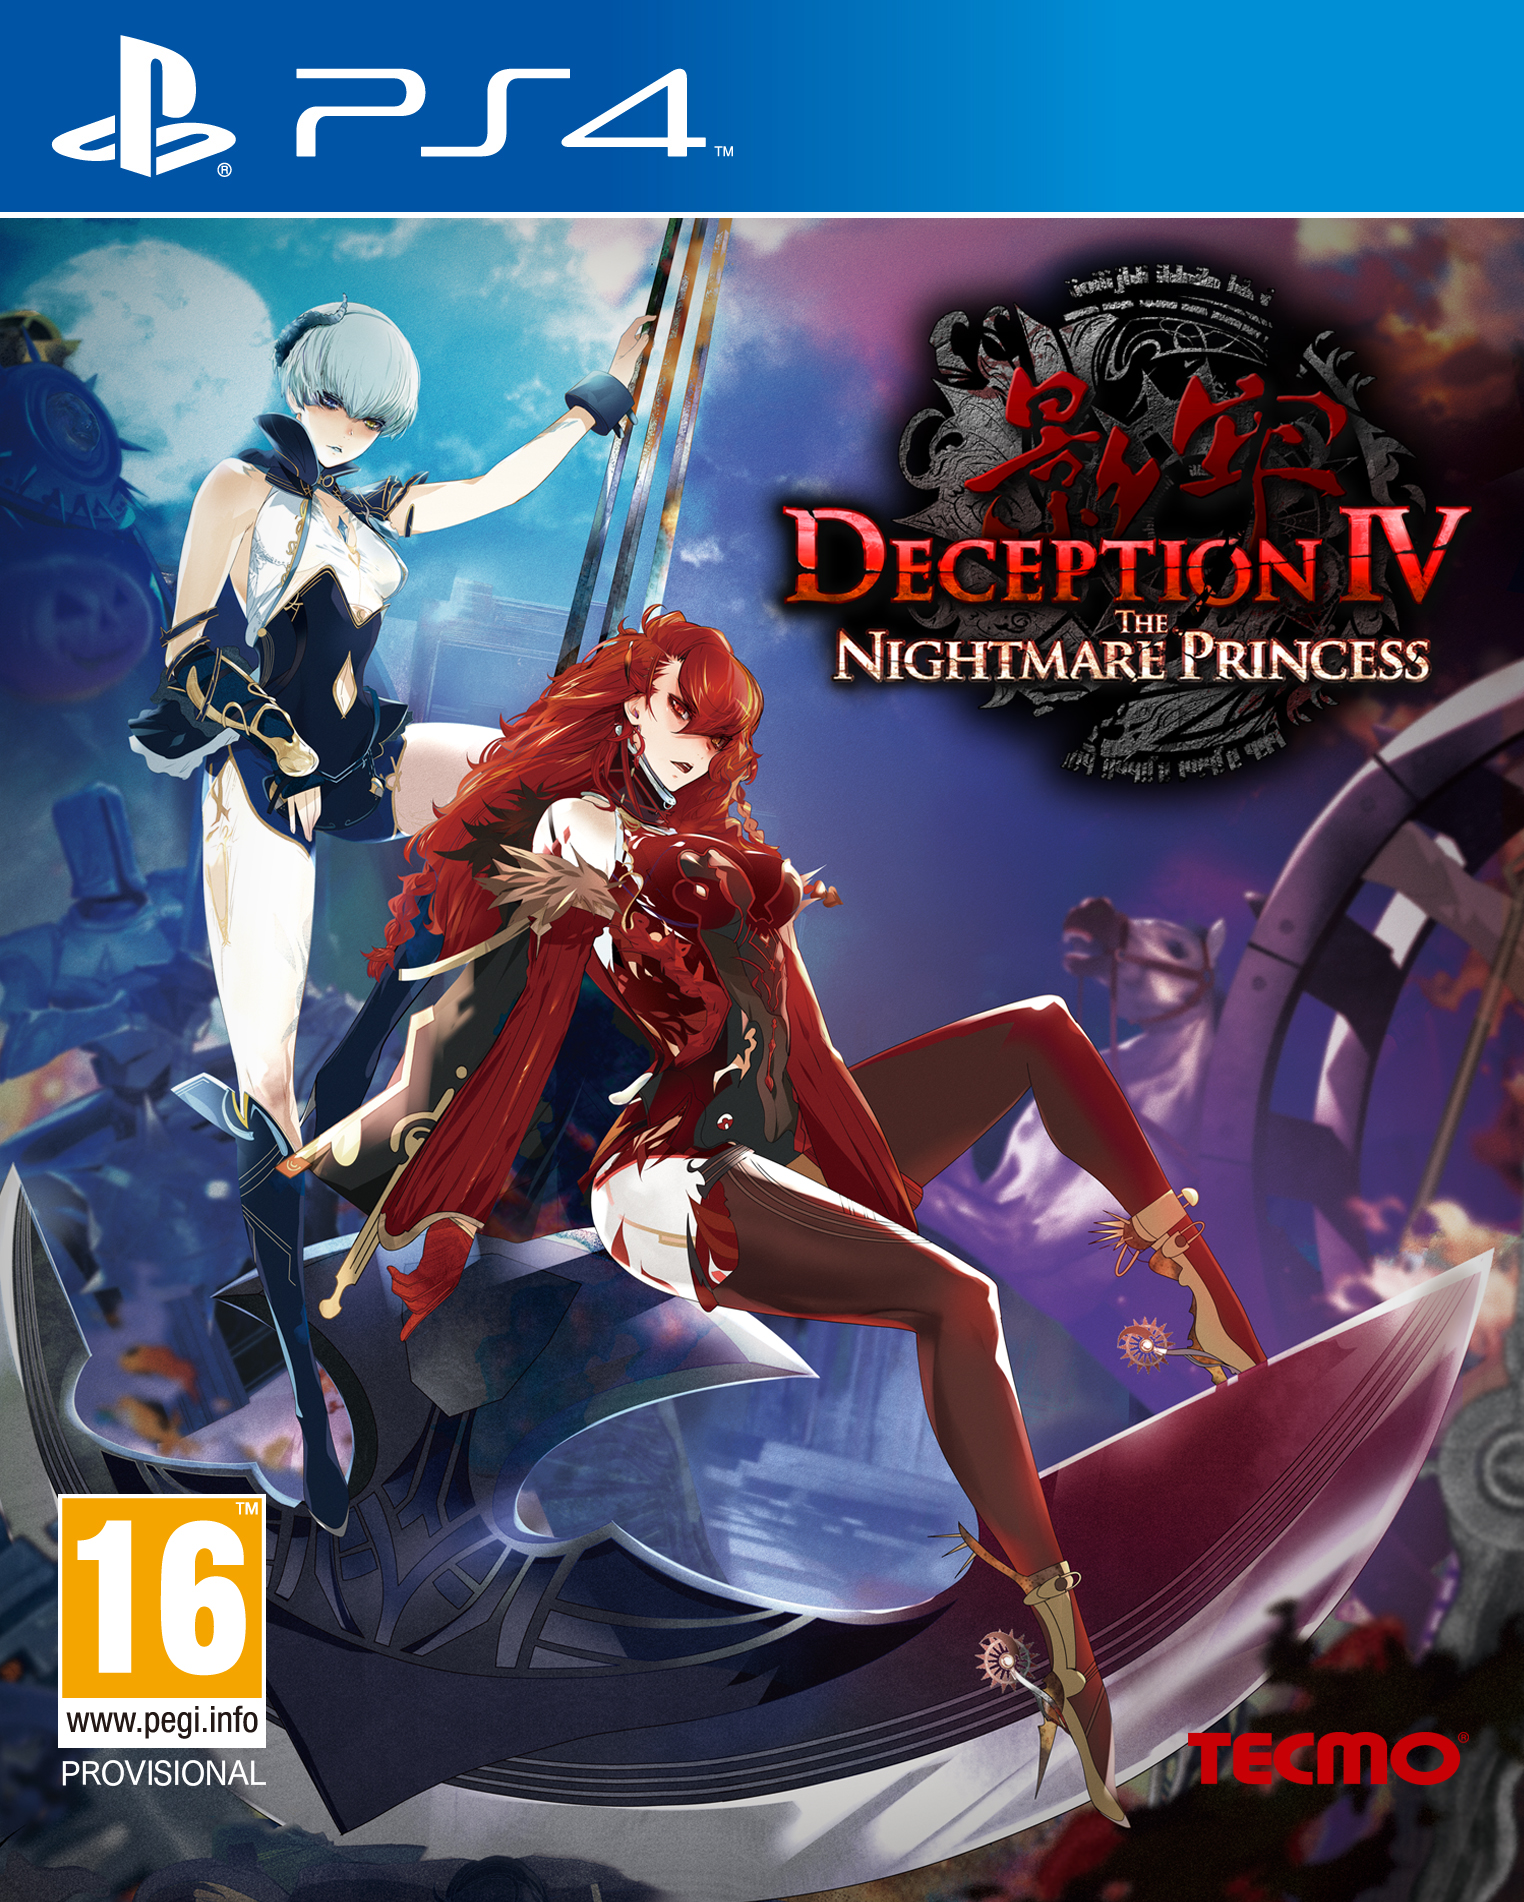 Box art - Deception IV: The Nightmare Princess